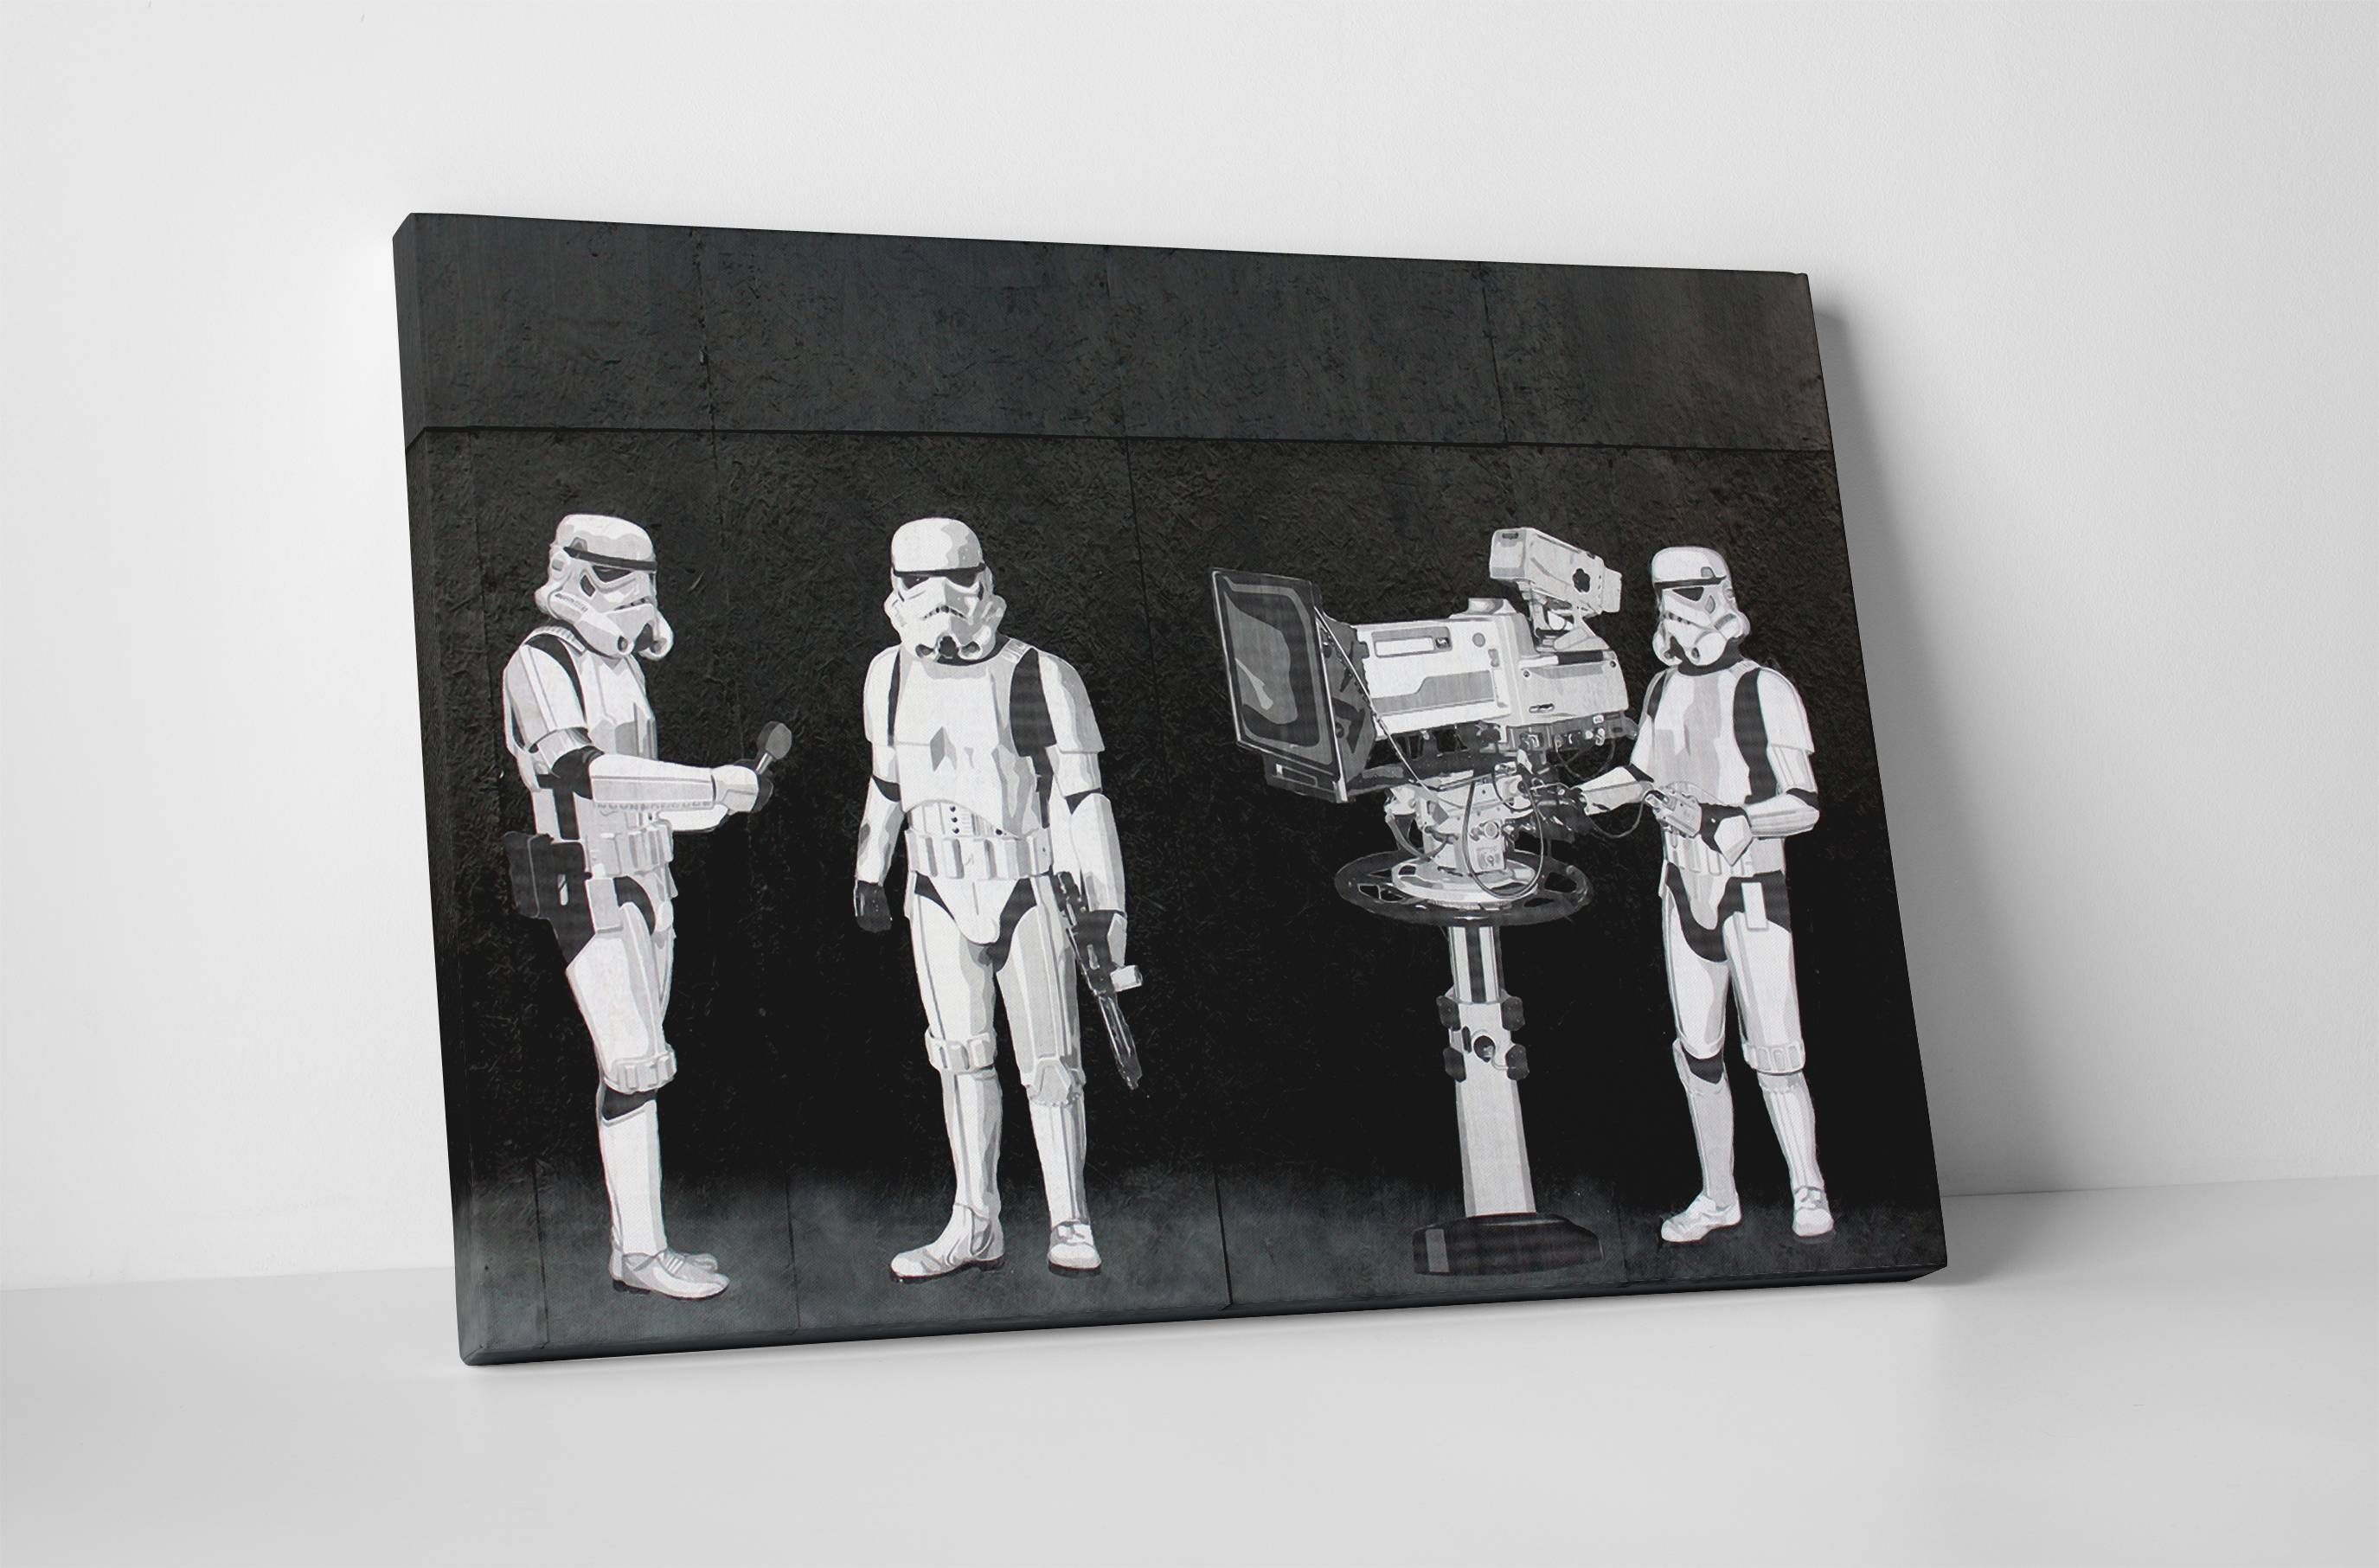 Banksy Stormtroopers Filming Oscars Canvas Wall Art In Most Recently Released Banksy Wall Art Canvas (View 5 of 20)